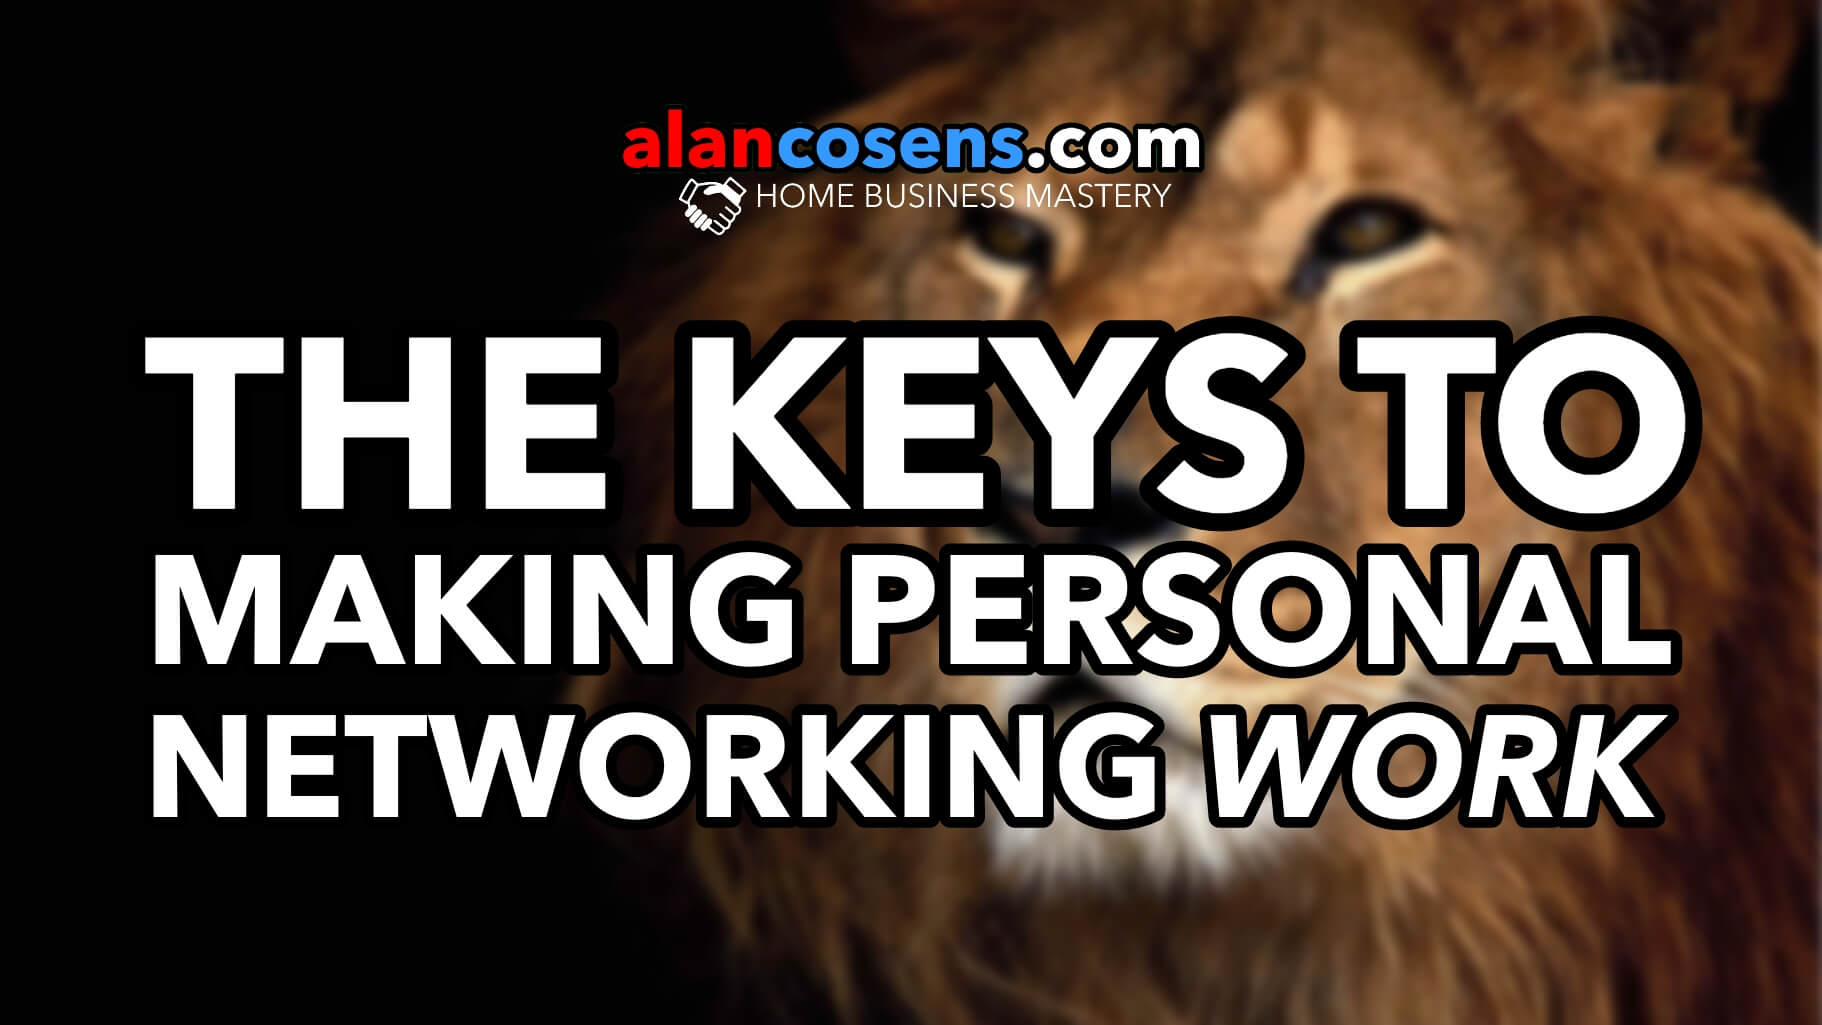 The Keys To Making Personal Networking Work